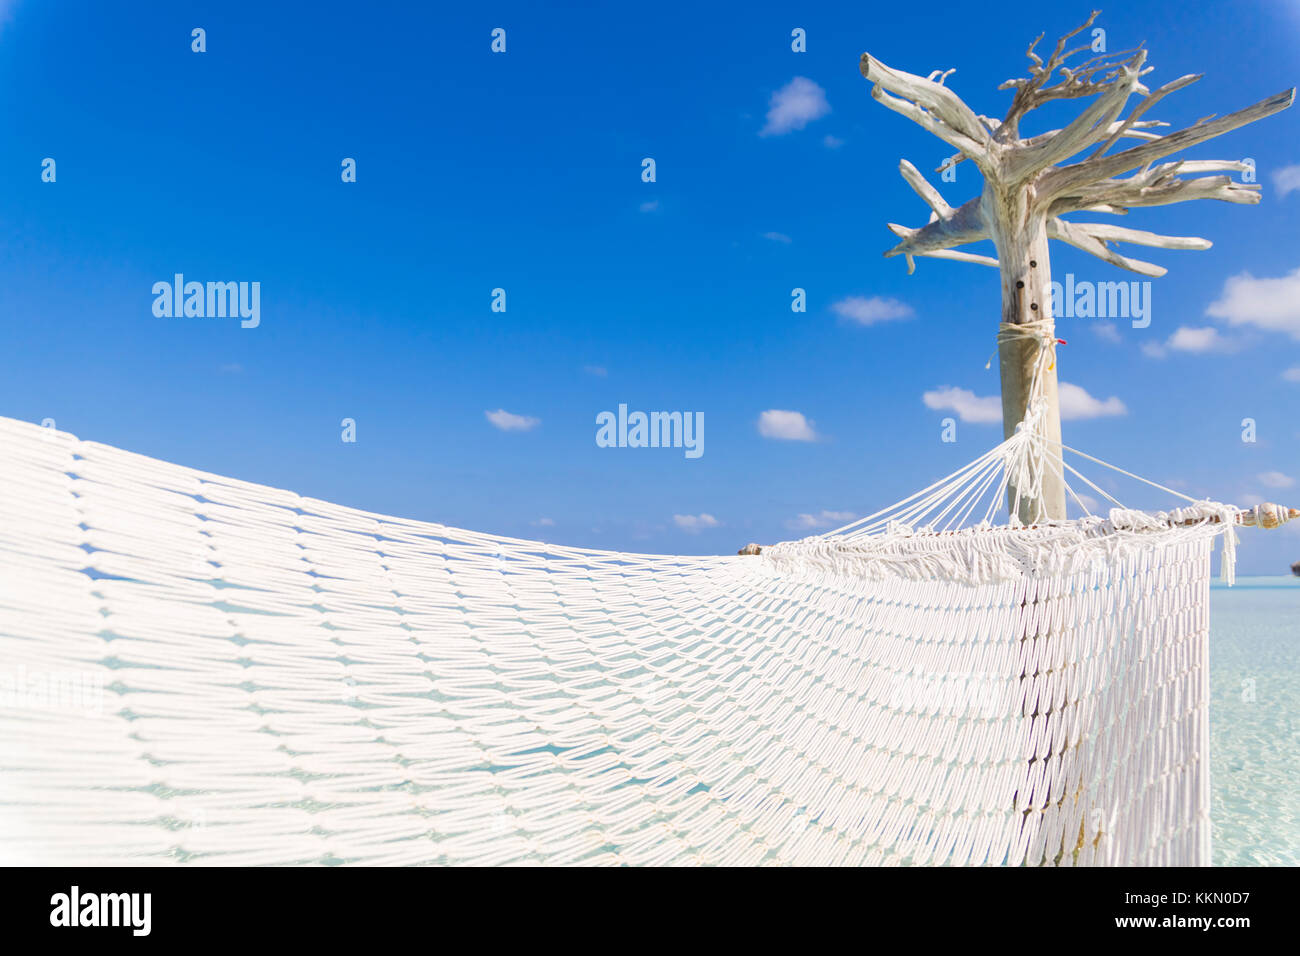 Hammock hold by white tree in a shallow and clear sea. Stock Photo